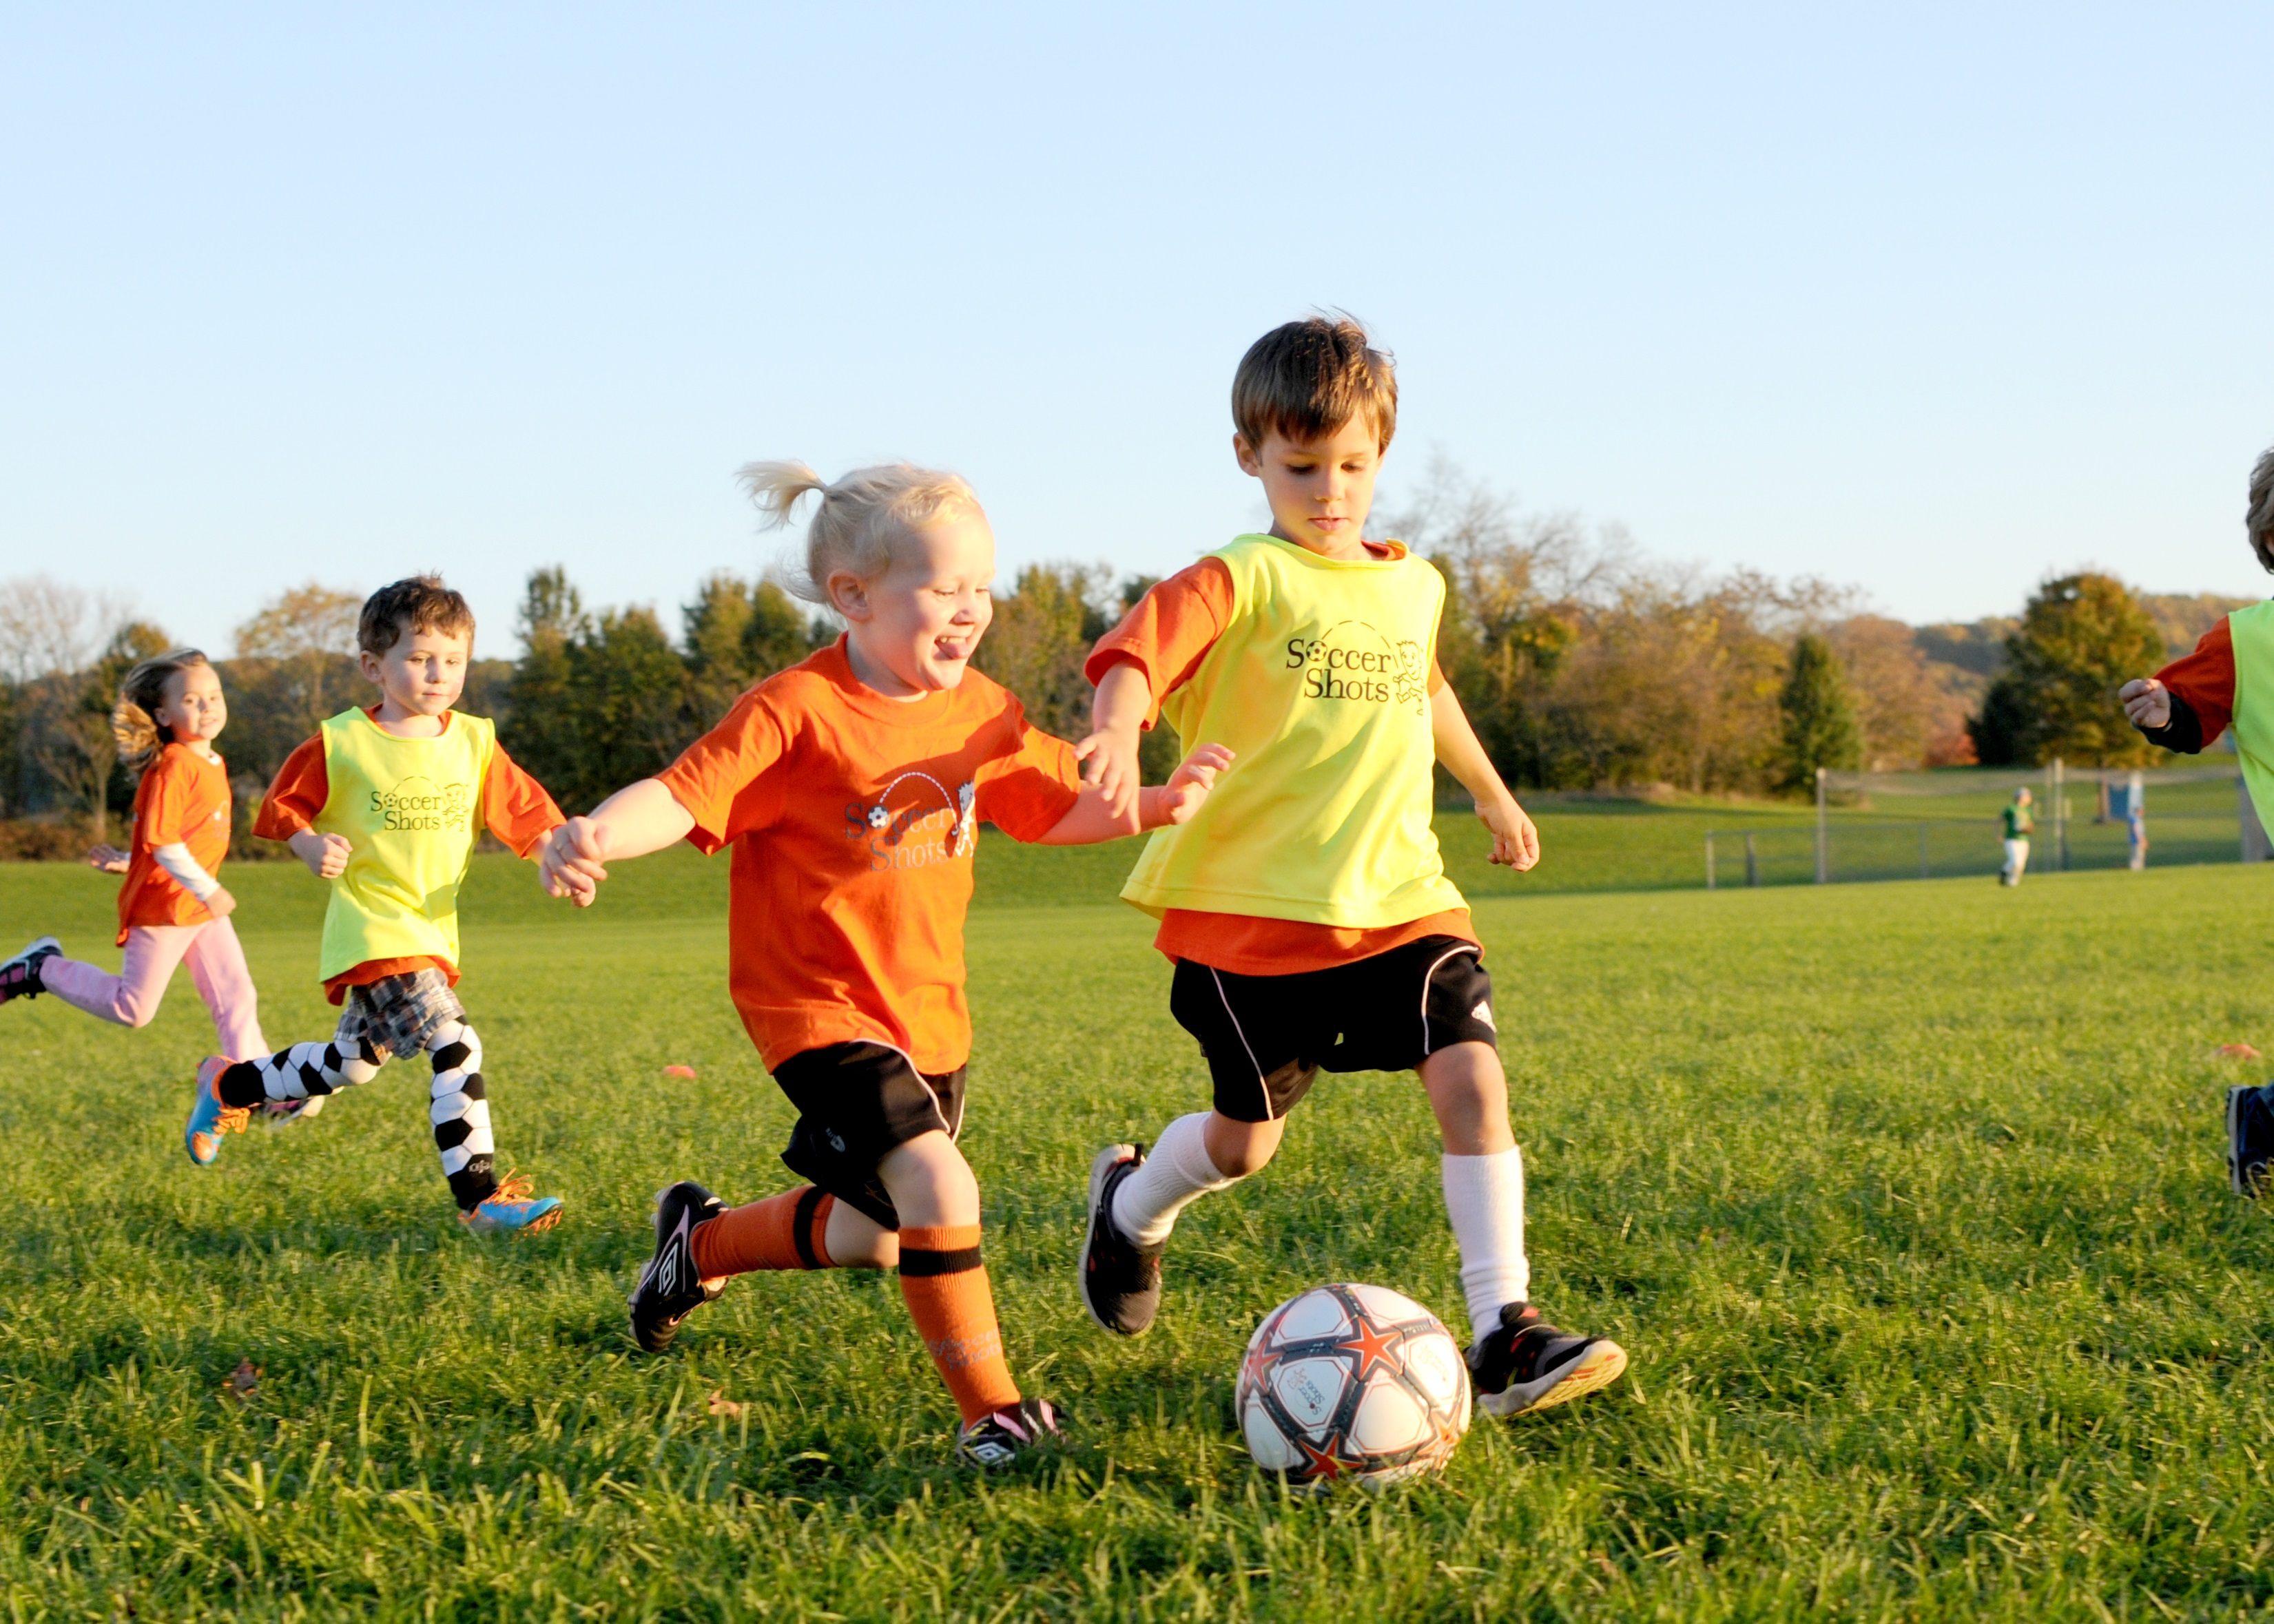 Kids Football Wallpaper: Youth Sports Are Destructive To Family Life